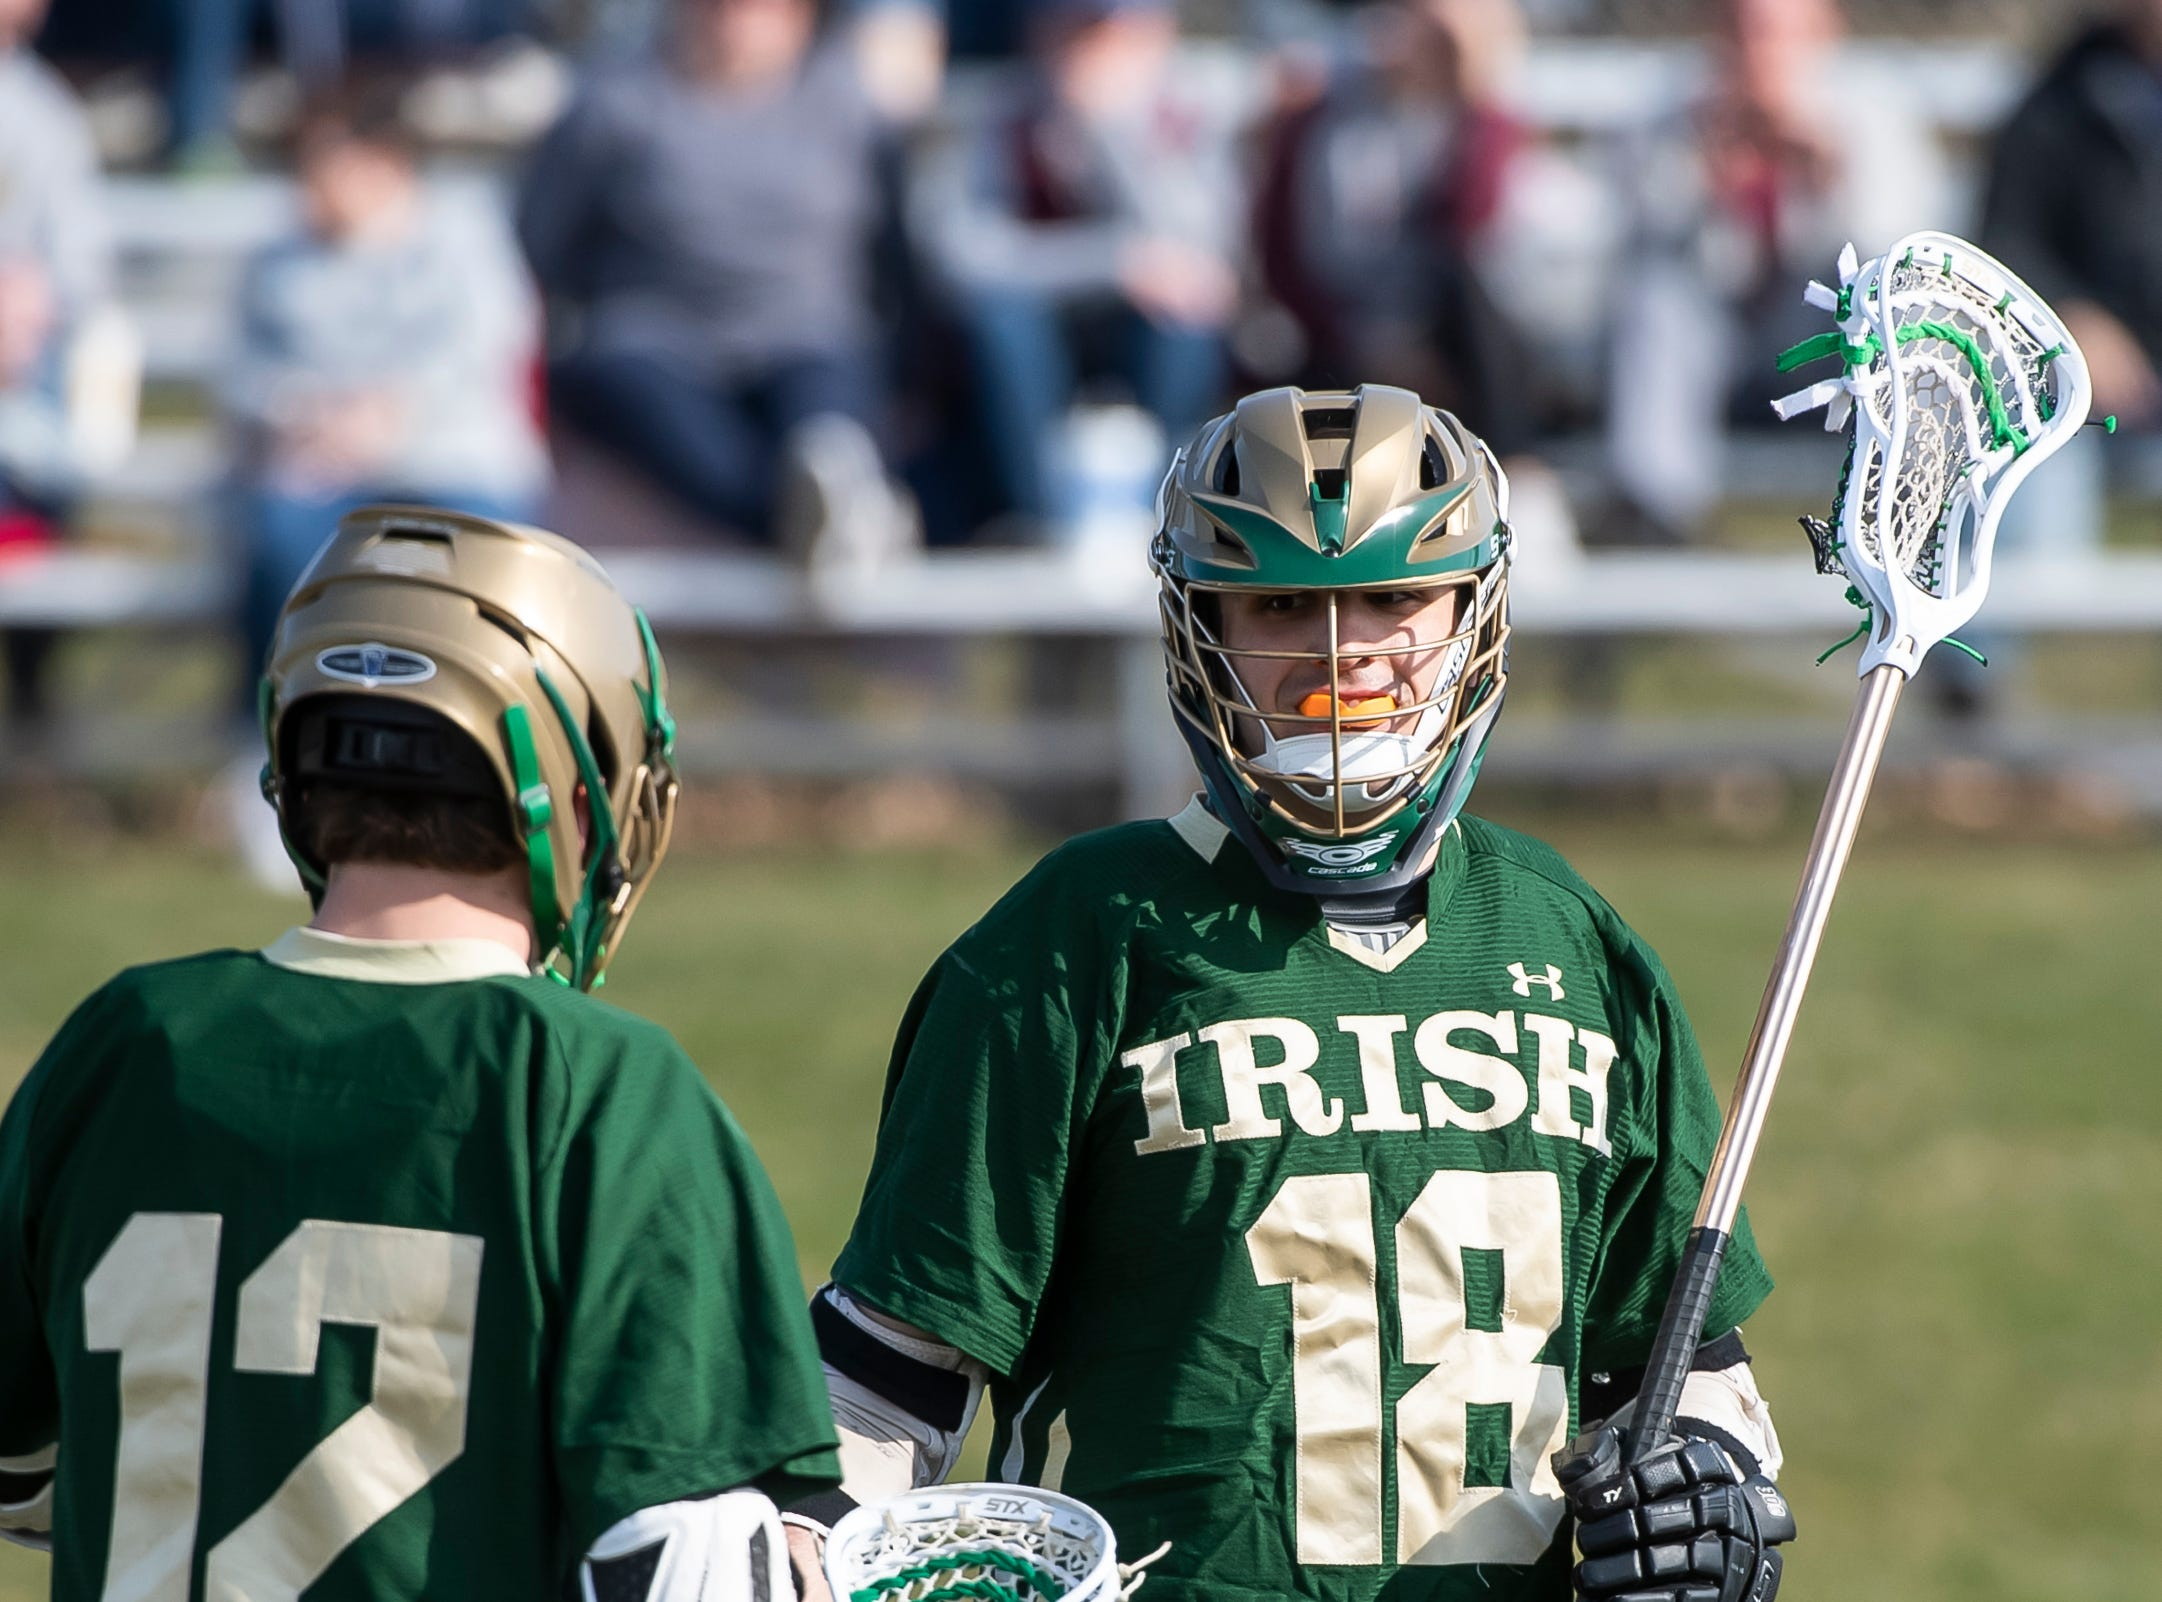 York Catholic's Cole Witman (18) reacts after scoring against New Oxford on Thursday, April 4, 2019.  Witman had three goals and five assists as York Catholic won 14-8.